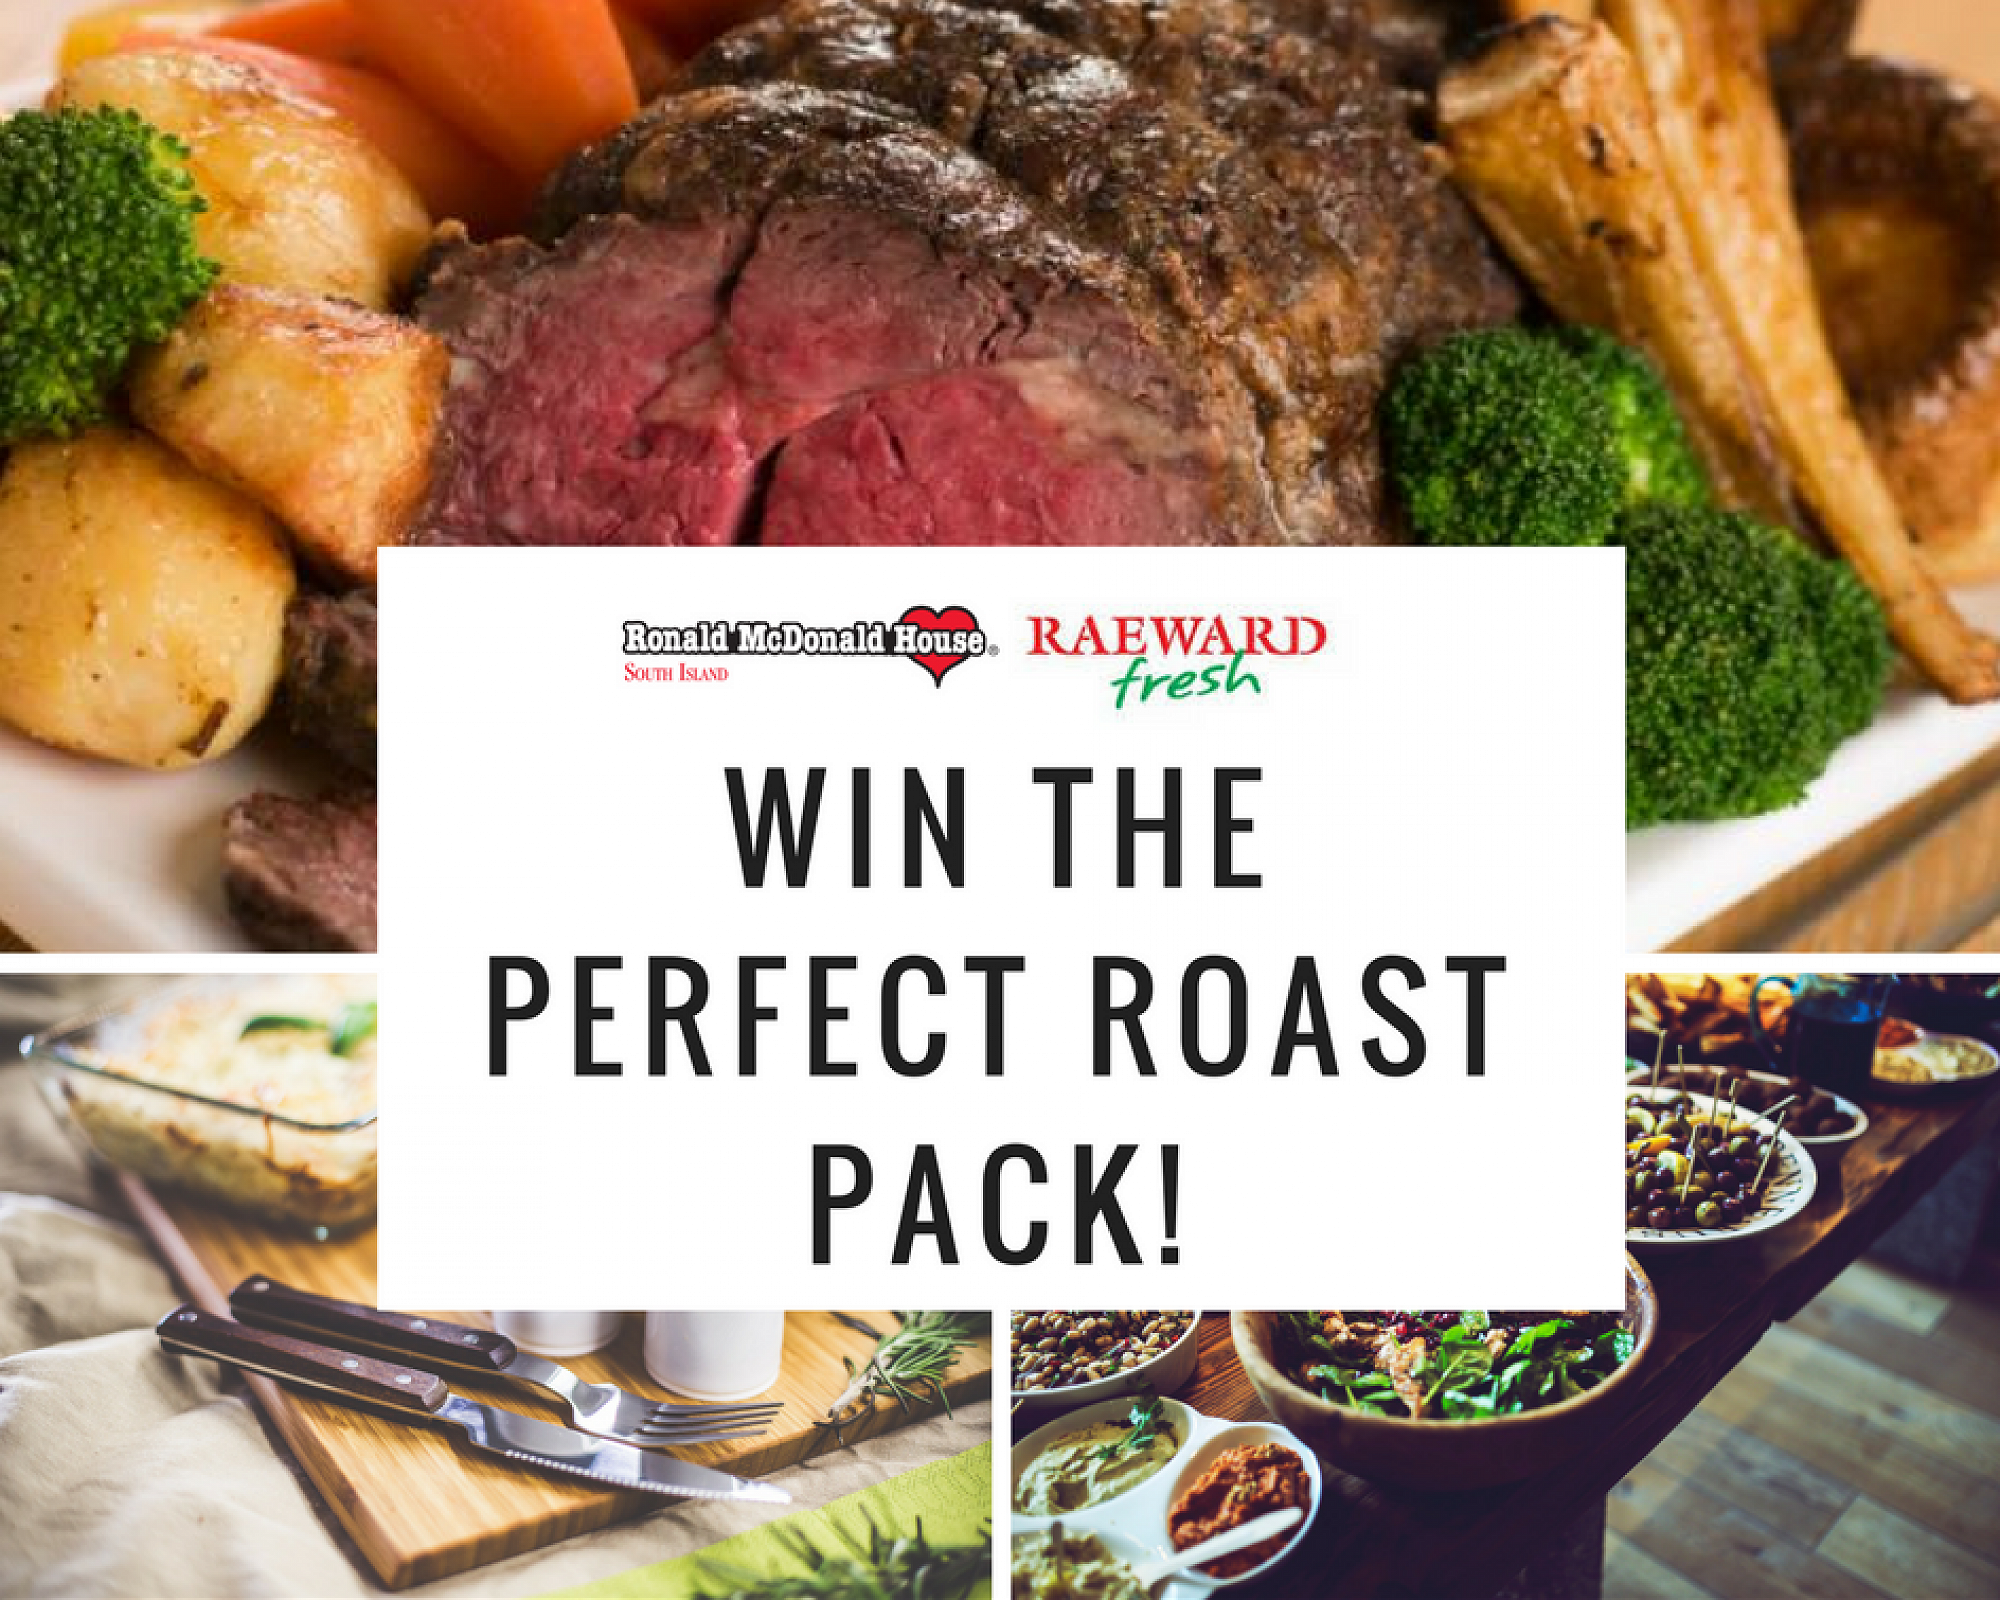 Win the perfect roast pack thanks to Raeward Fresh Tower Junction!